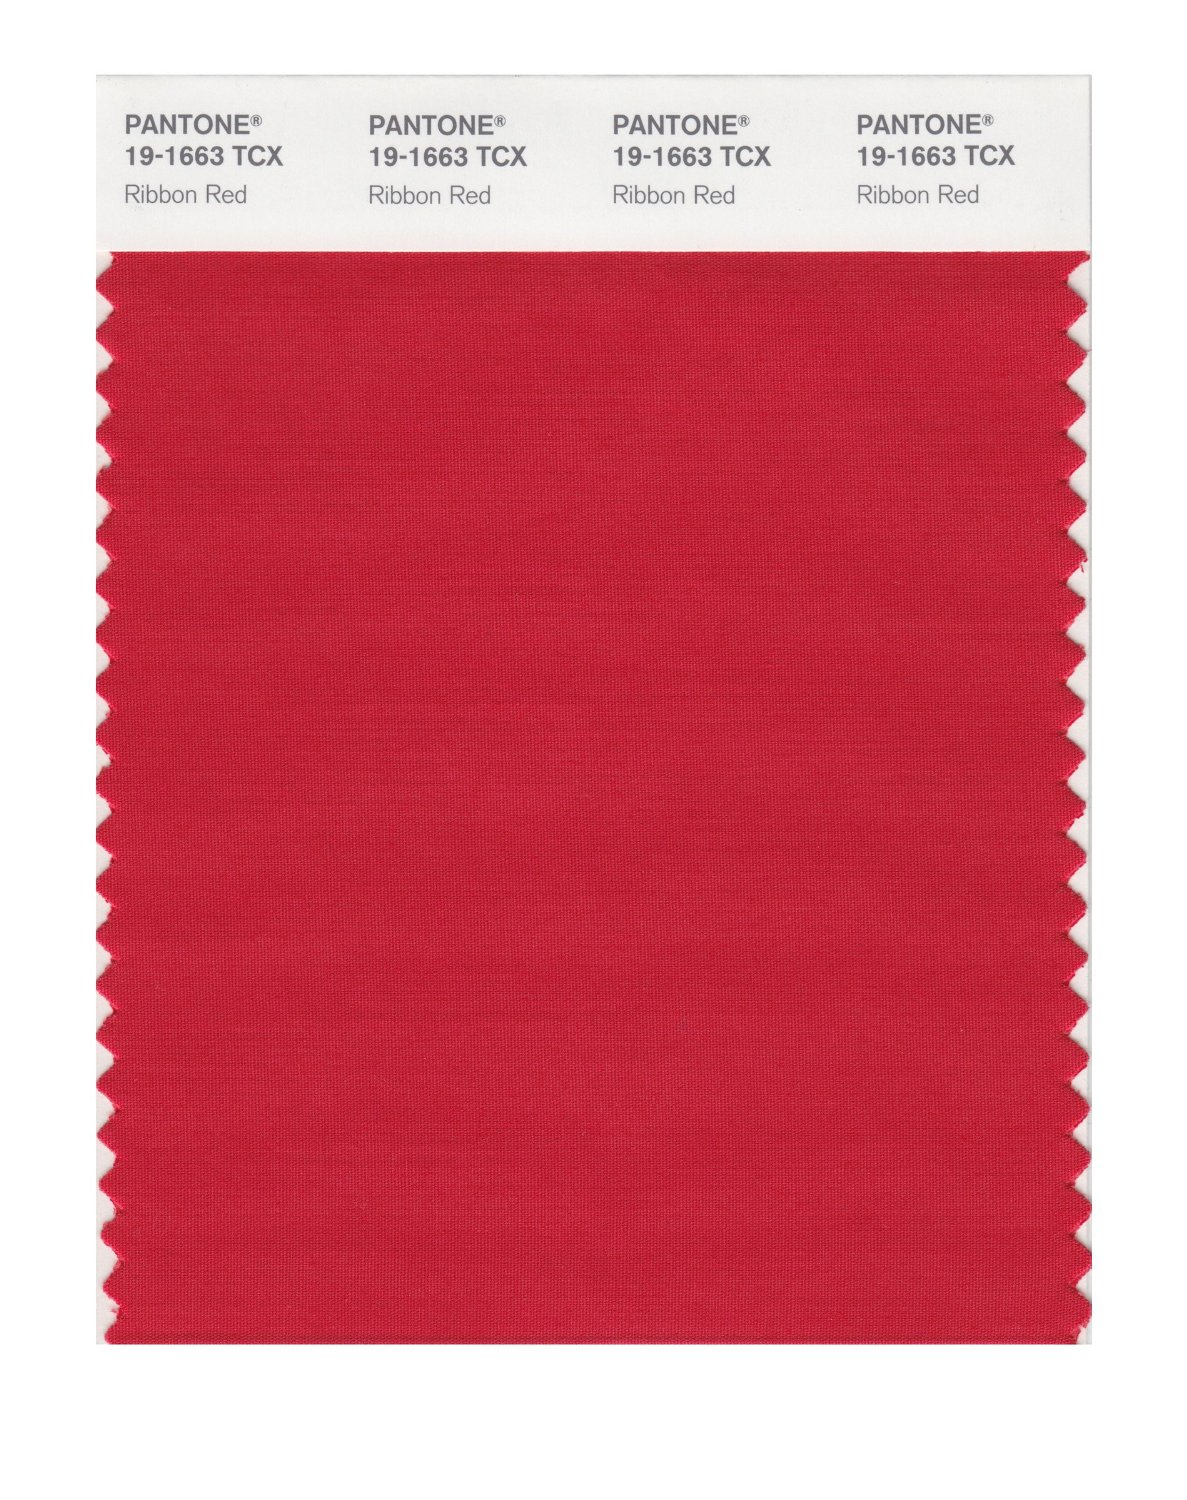 Pantone Smart Swatch 19-1663 Ribbon Red